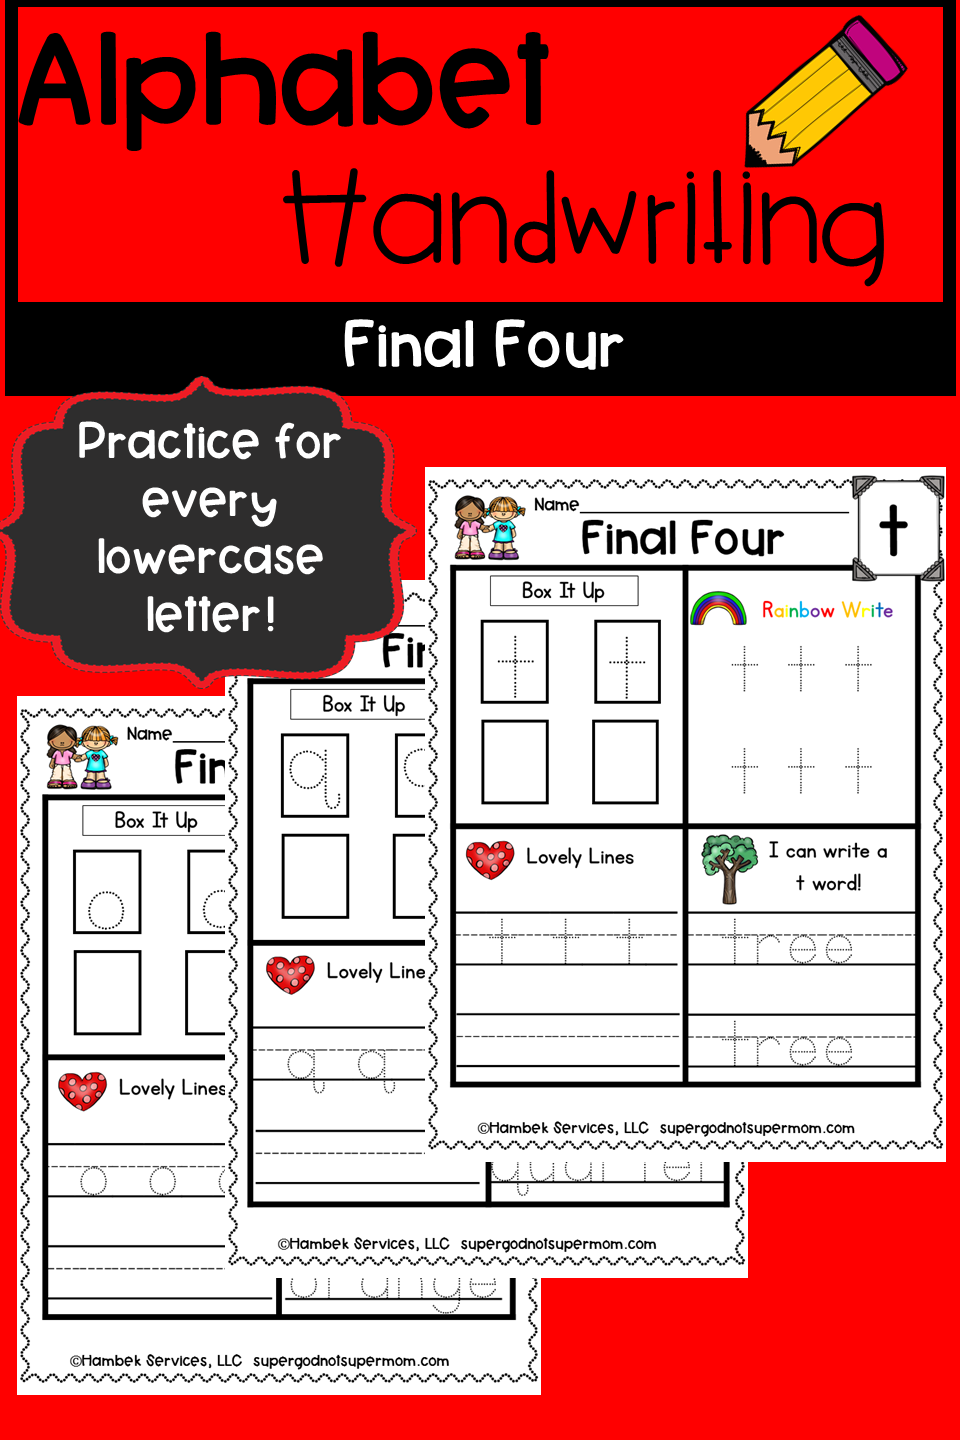 Alphabet Handwriting Practice Pages Final Four Lowercase Letters Learn Handwriting Alphabet Handwriting Practice Handwriting Alphabet [ 1440 x 960 Pixel ]